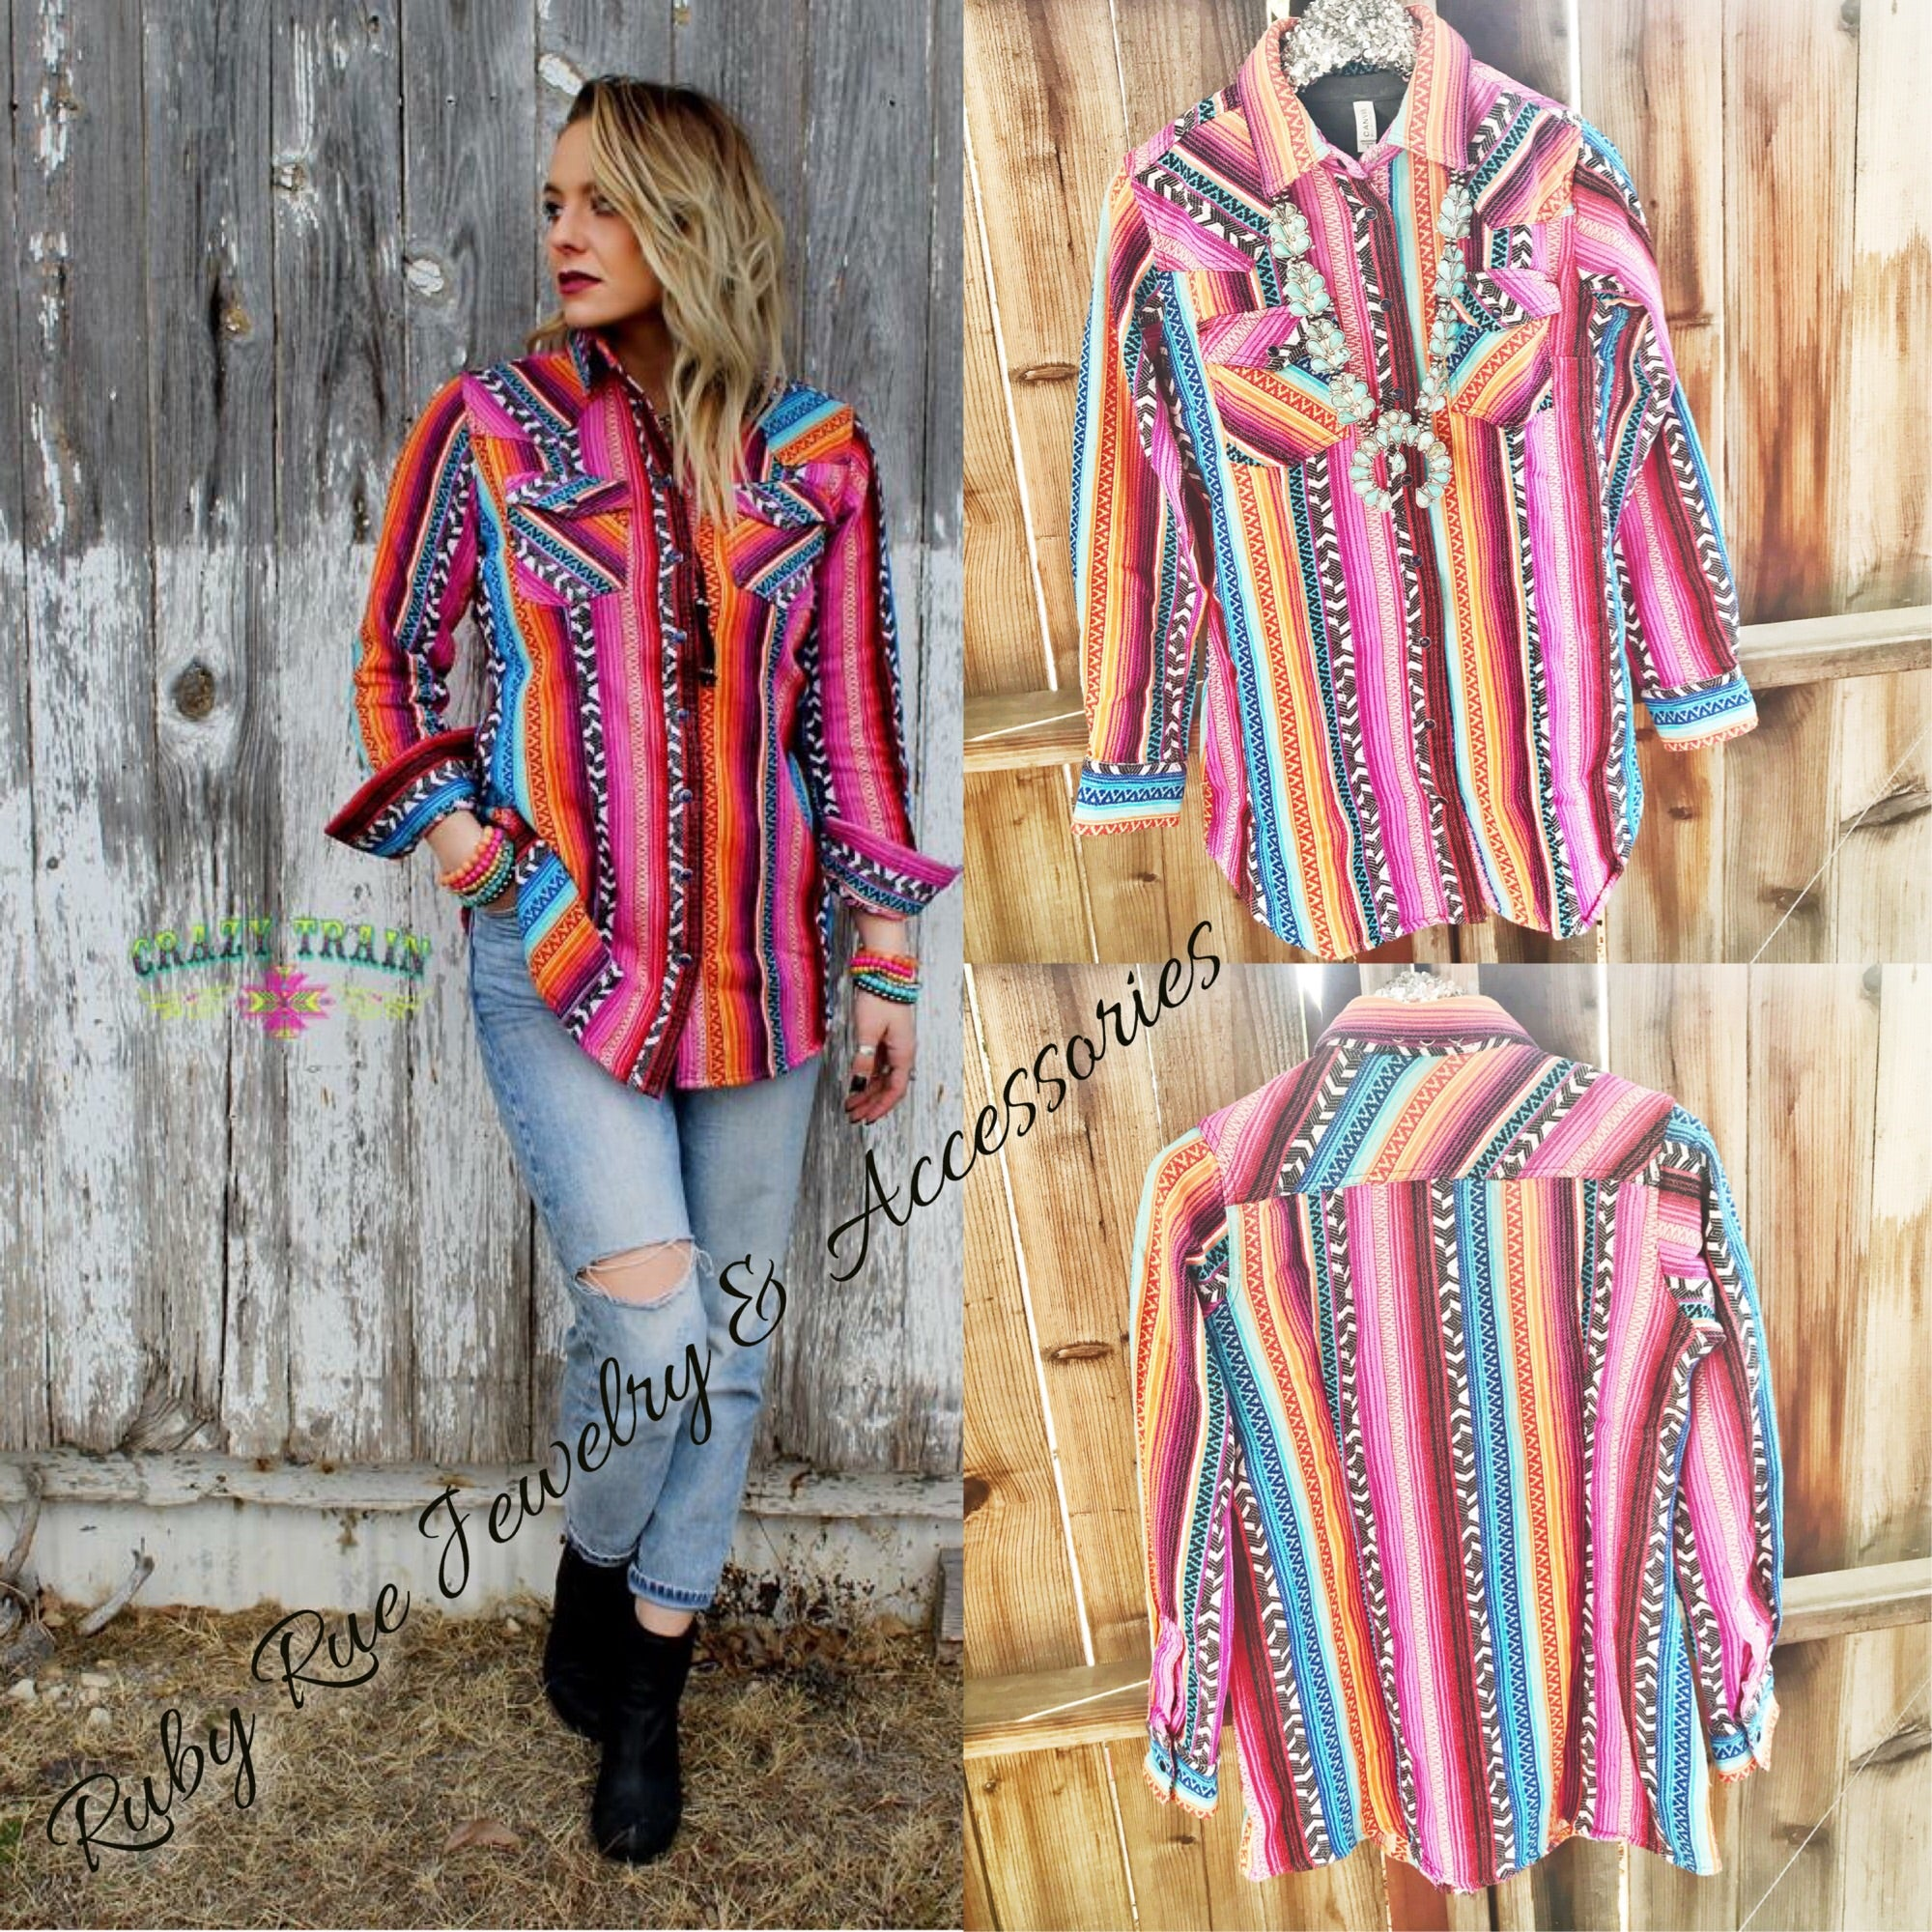 Crazy Train Brand Full Serape Tunic - Ruby Rue Jewelry & Accessories